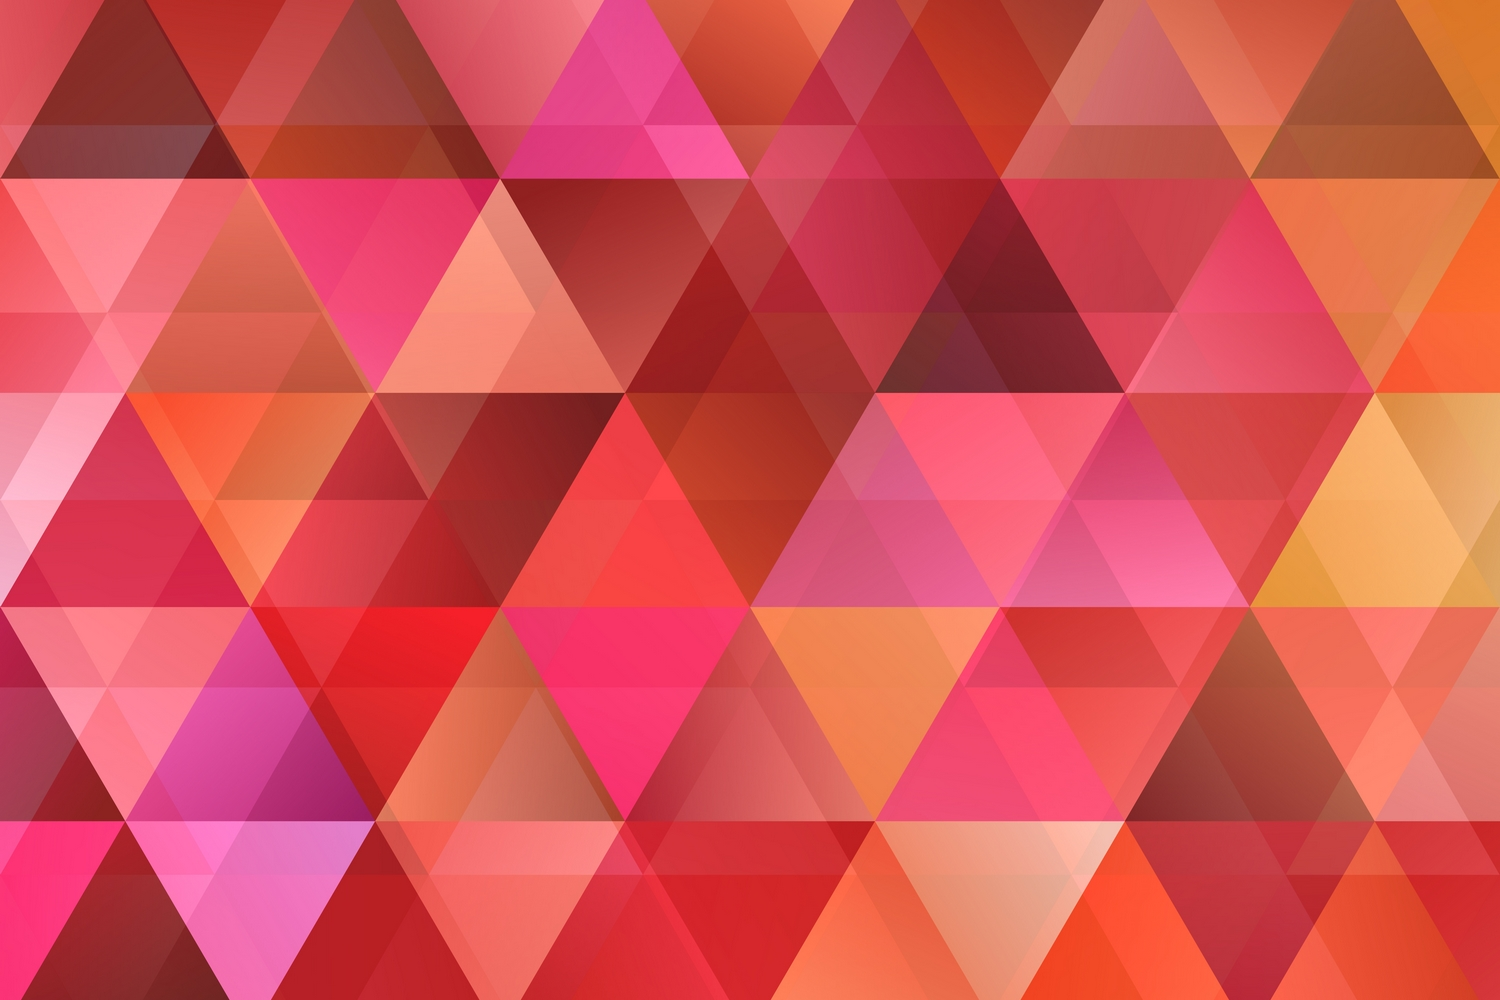 24 Gradient Polygon Backgrounds AI, EPS, JPG 5000x5000 example image 7